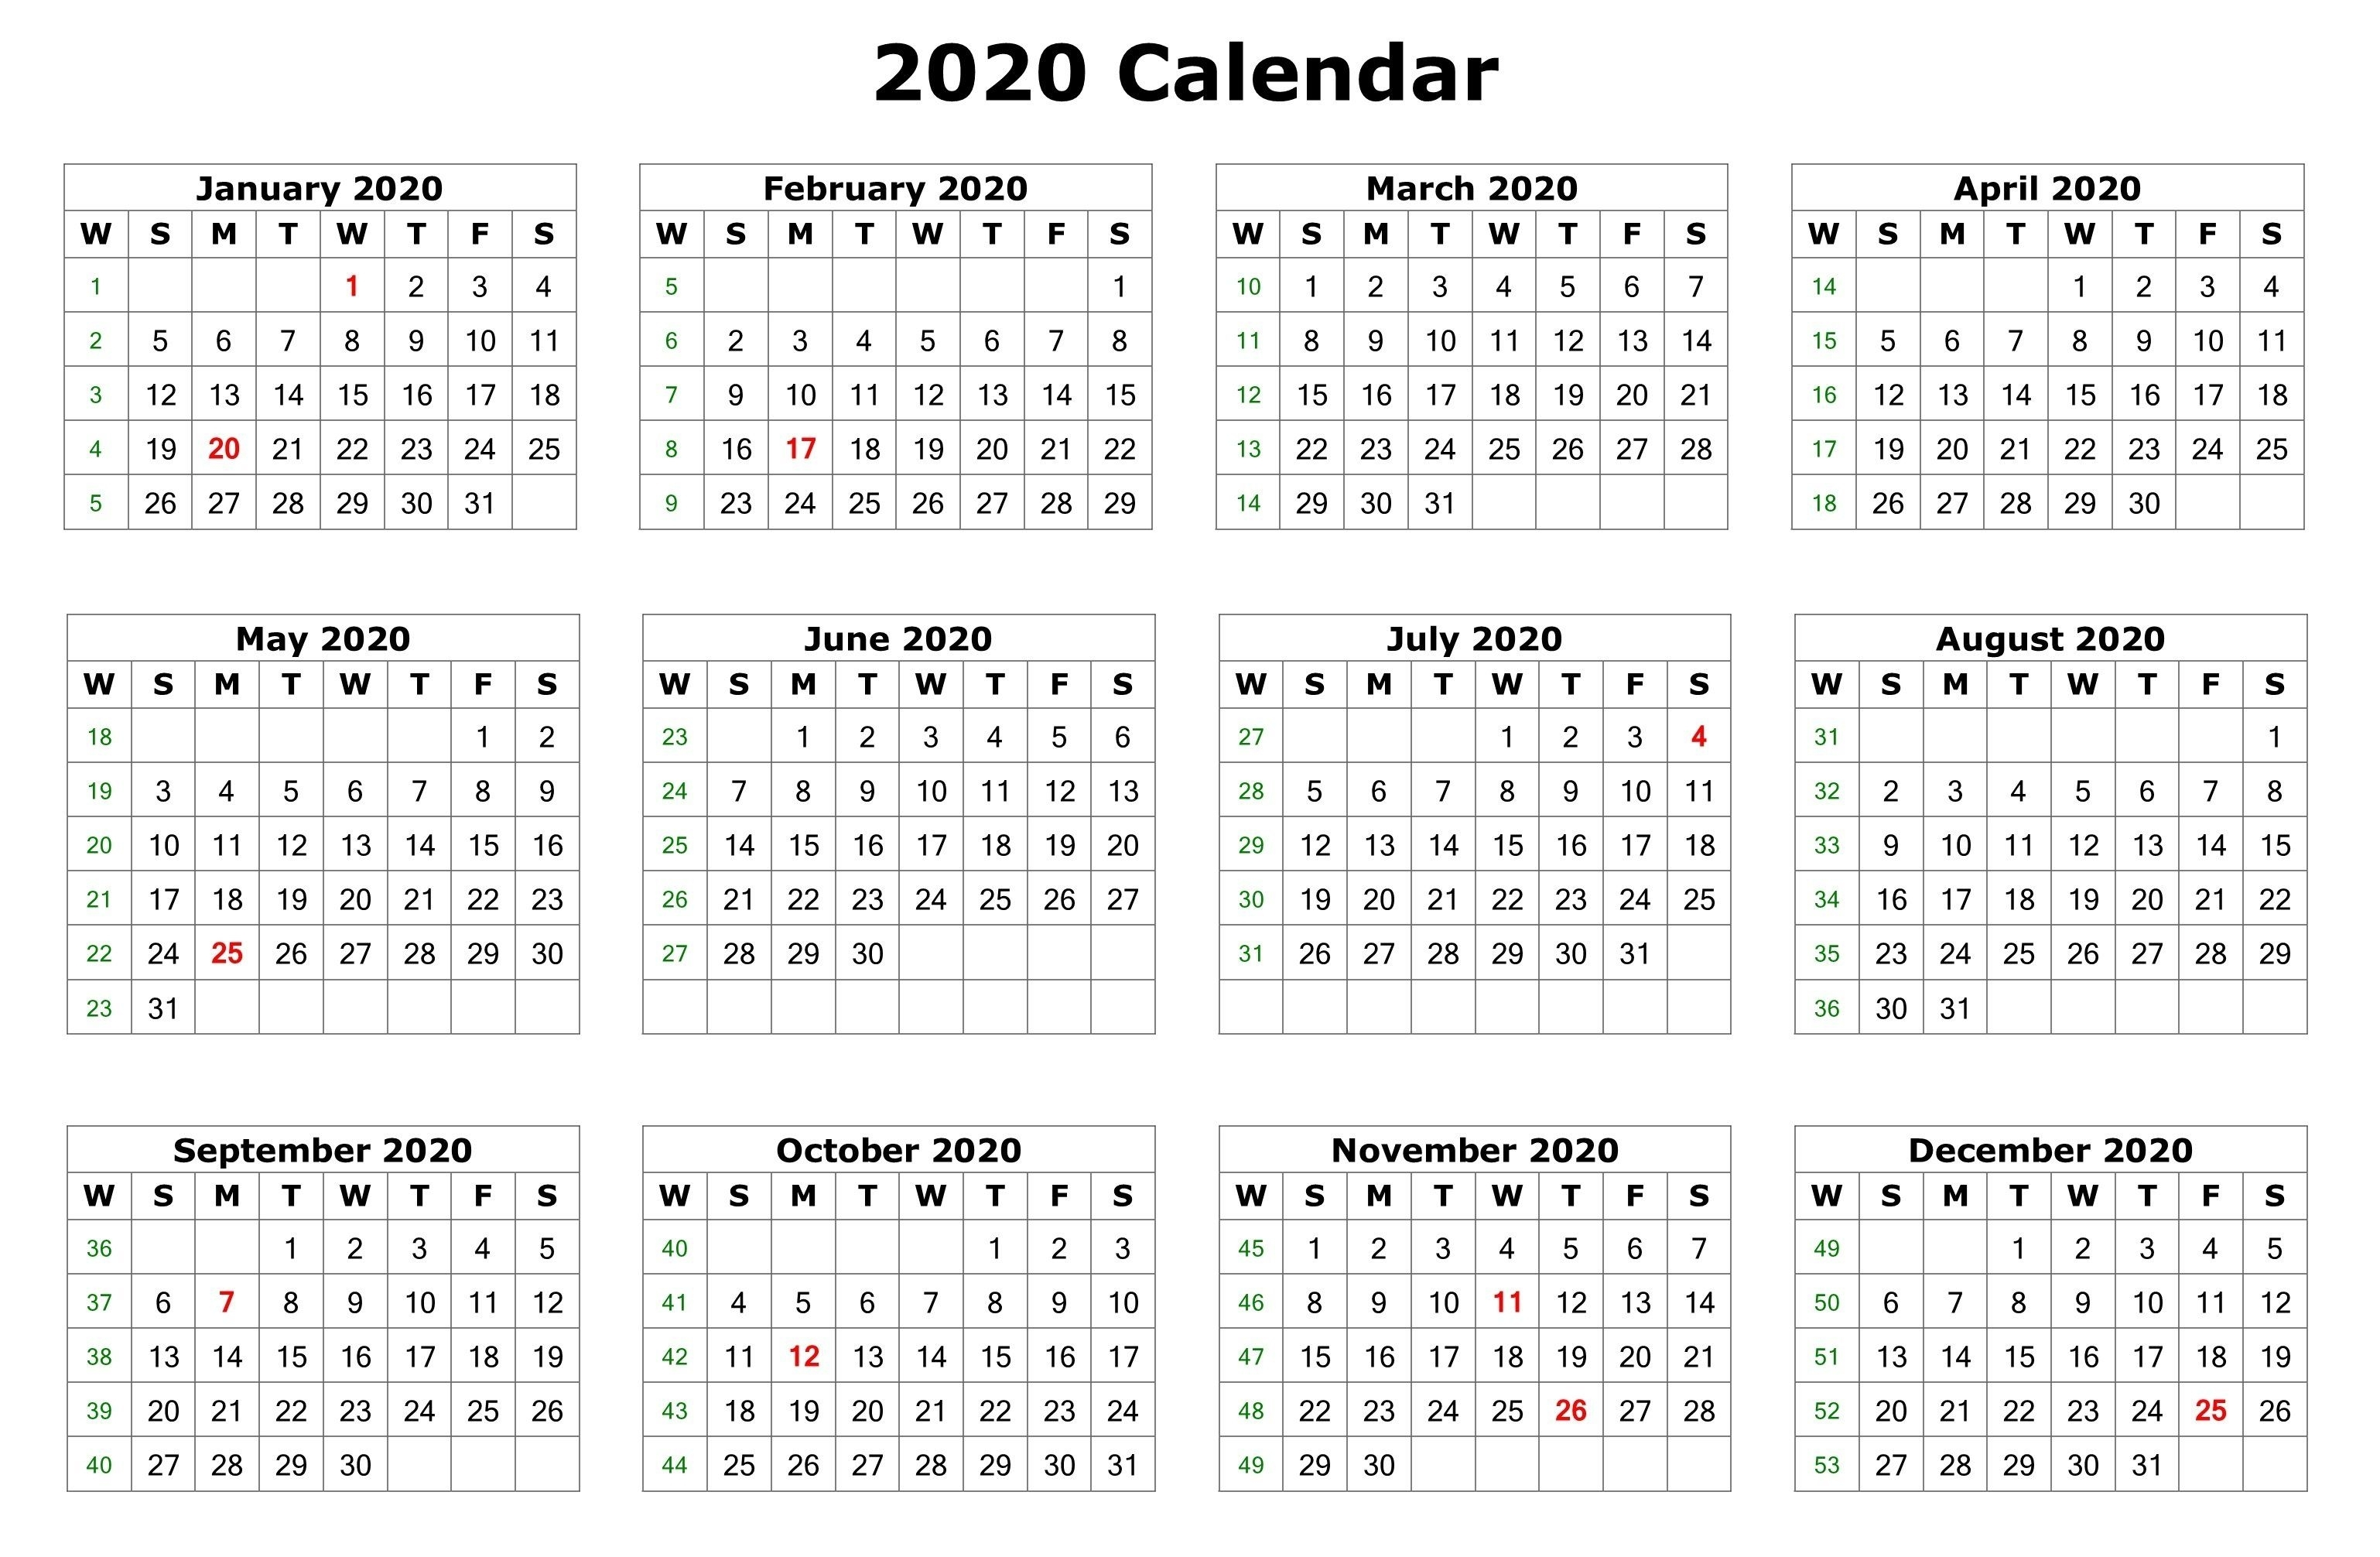 2020 12 Months Calendar Printable | 12 Month Calendar, 2020 with regard to Special Days By Month In 2020